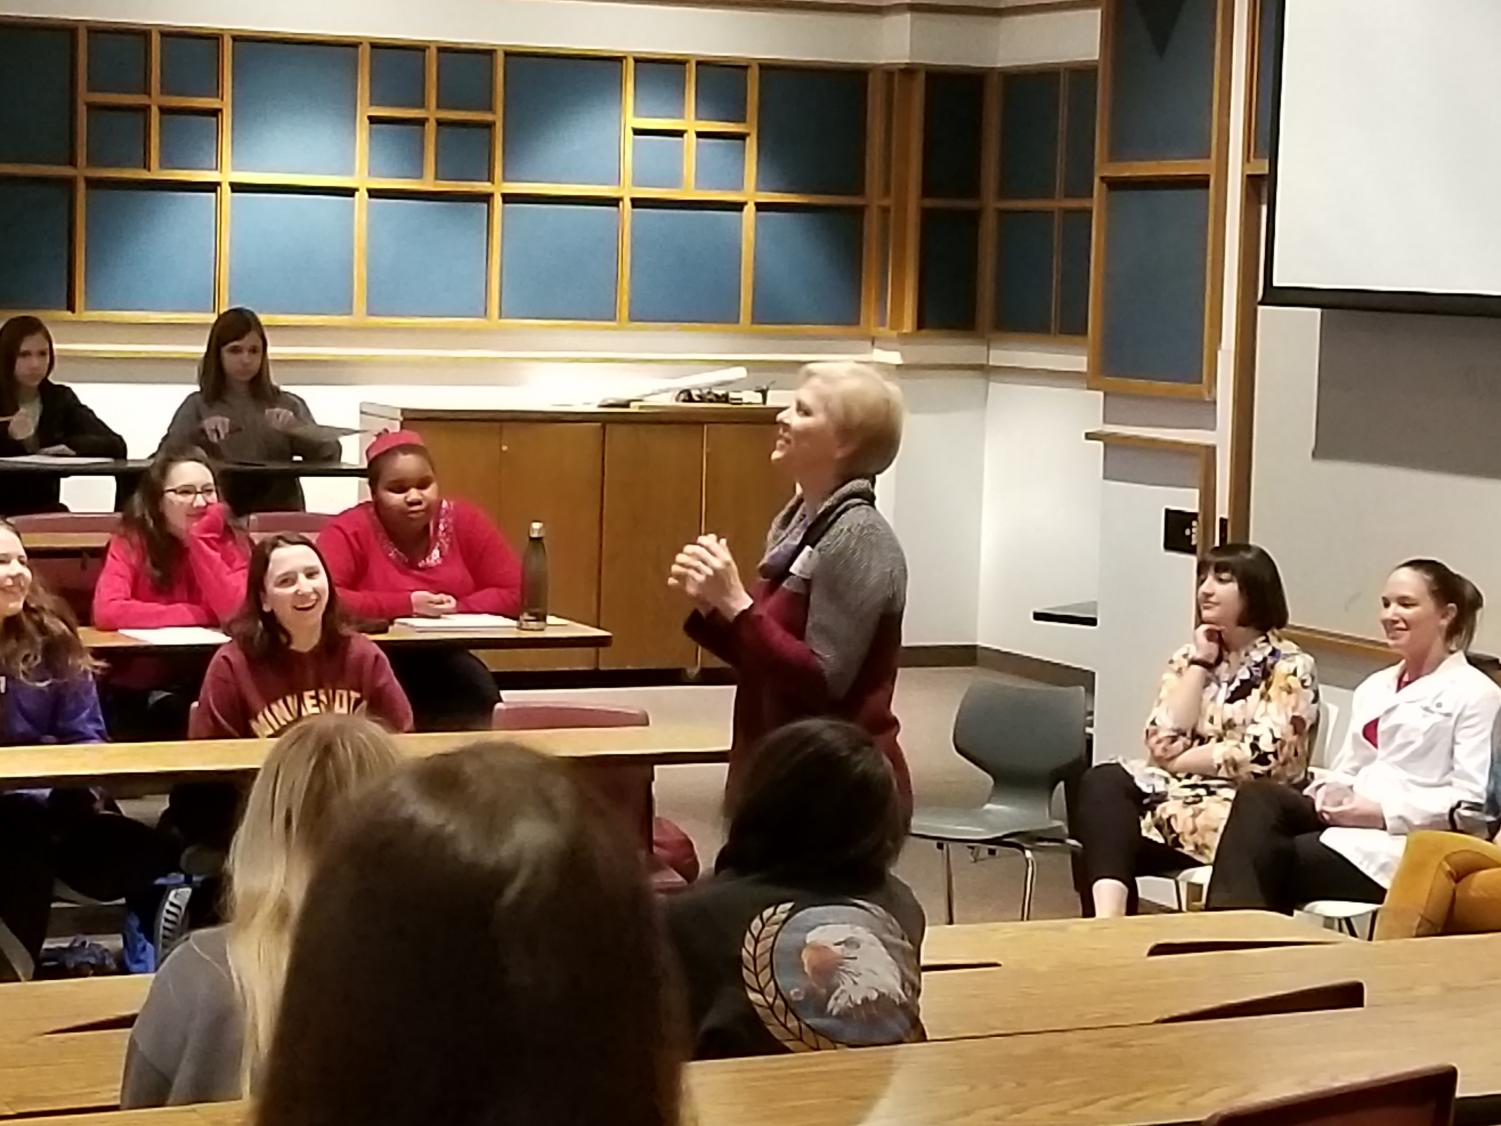 Lee Valsvik, Class of 1978, spoke at the Girl Power Event Feb. 5. She spoke about her career as a radio show host and her experiences on various morning news programs.